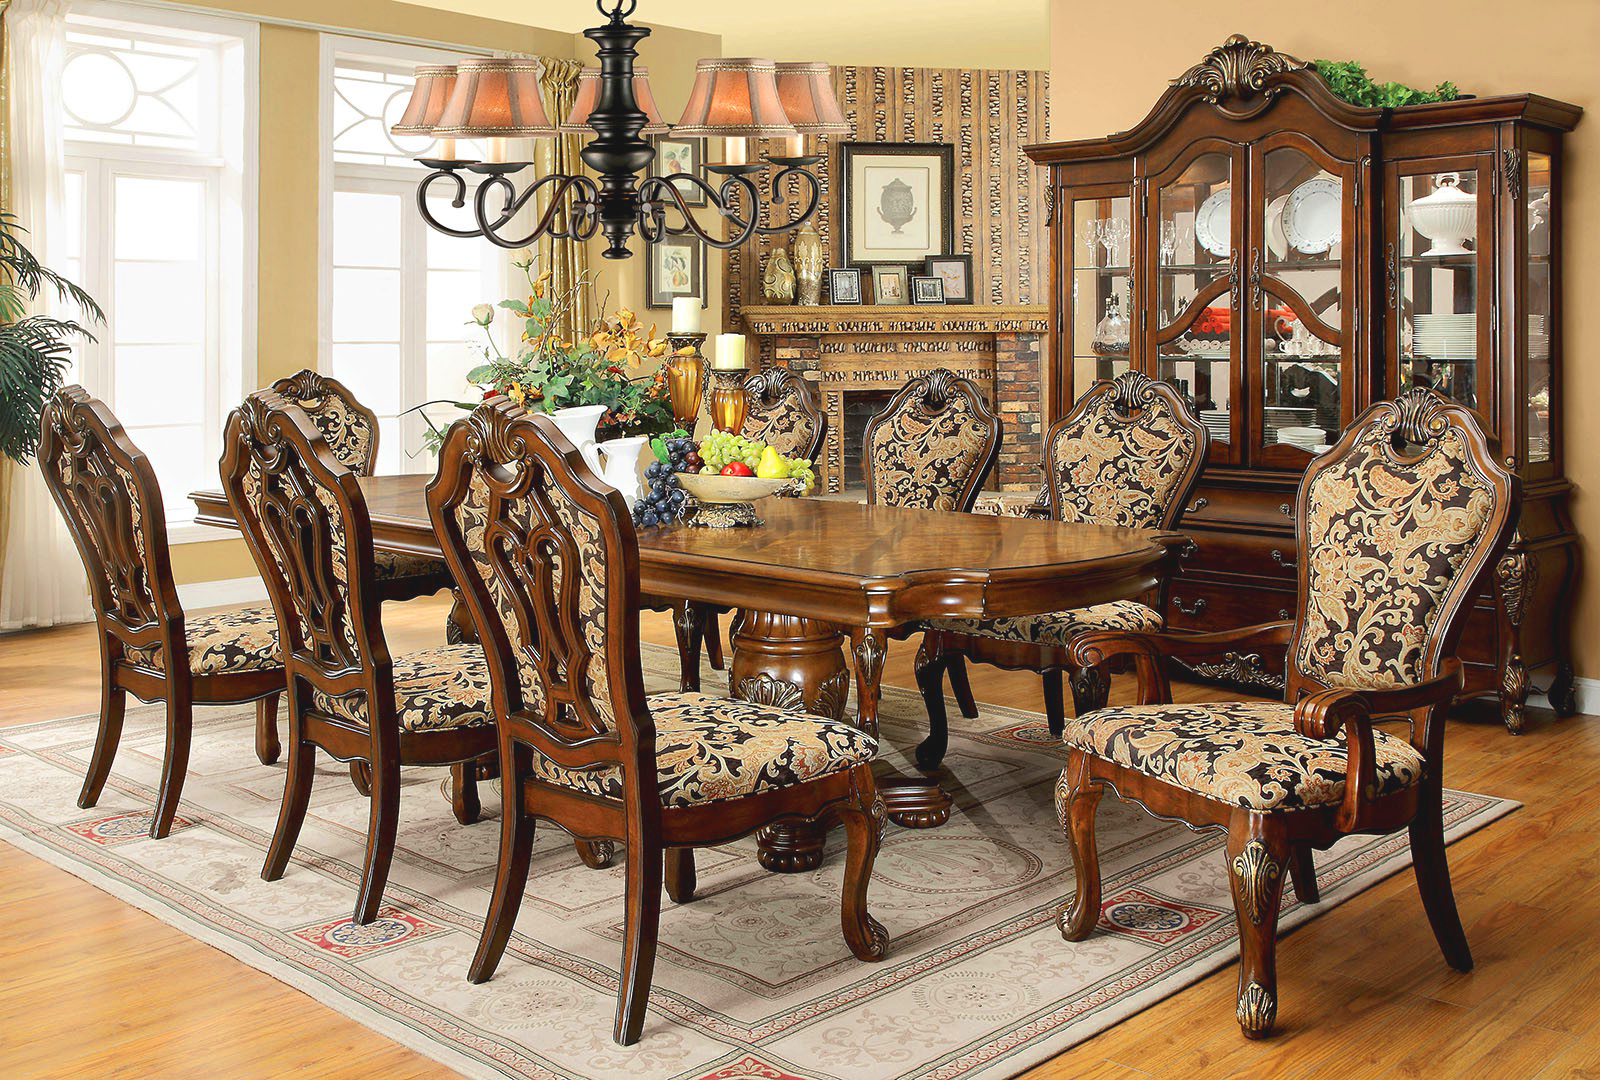 opulent traditional style formal dining room furniture set. Black Bedroom Furniture Sets. Home Design Ideas